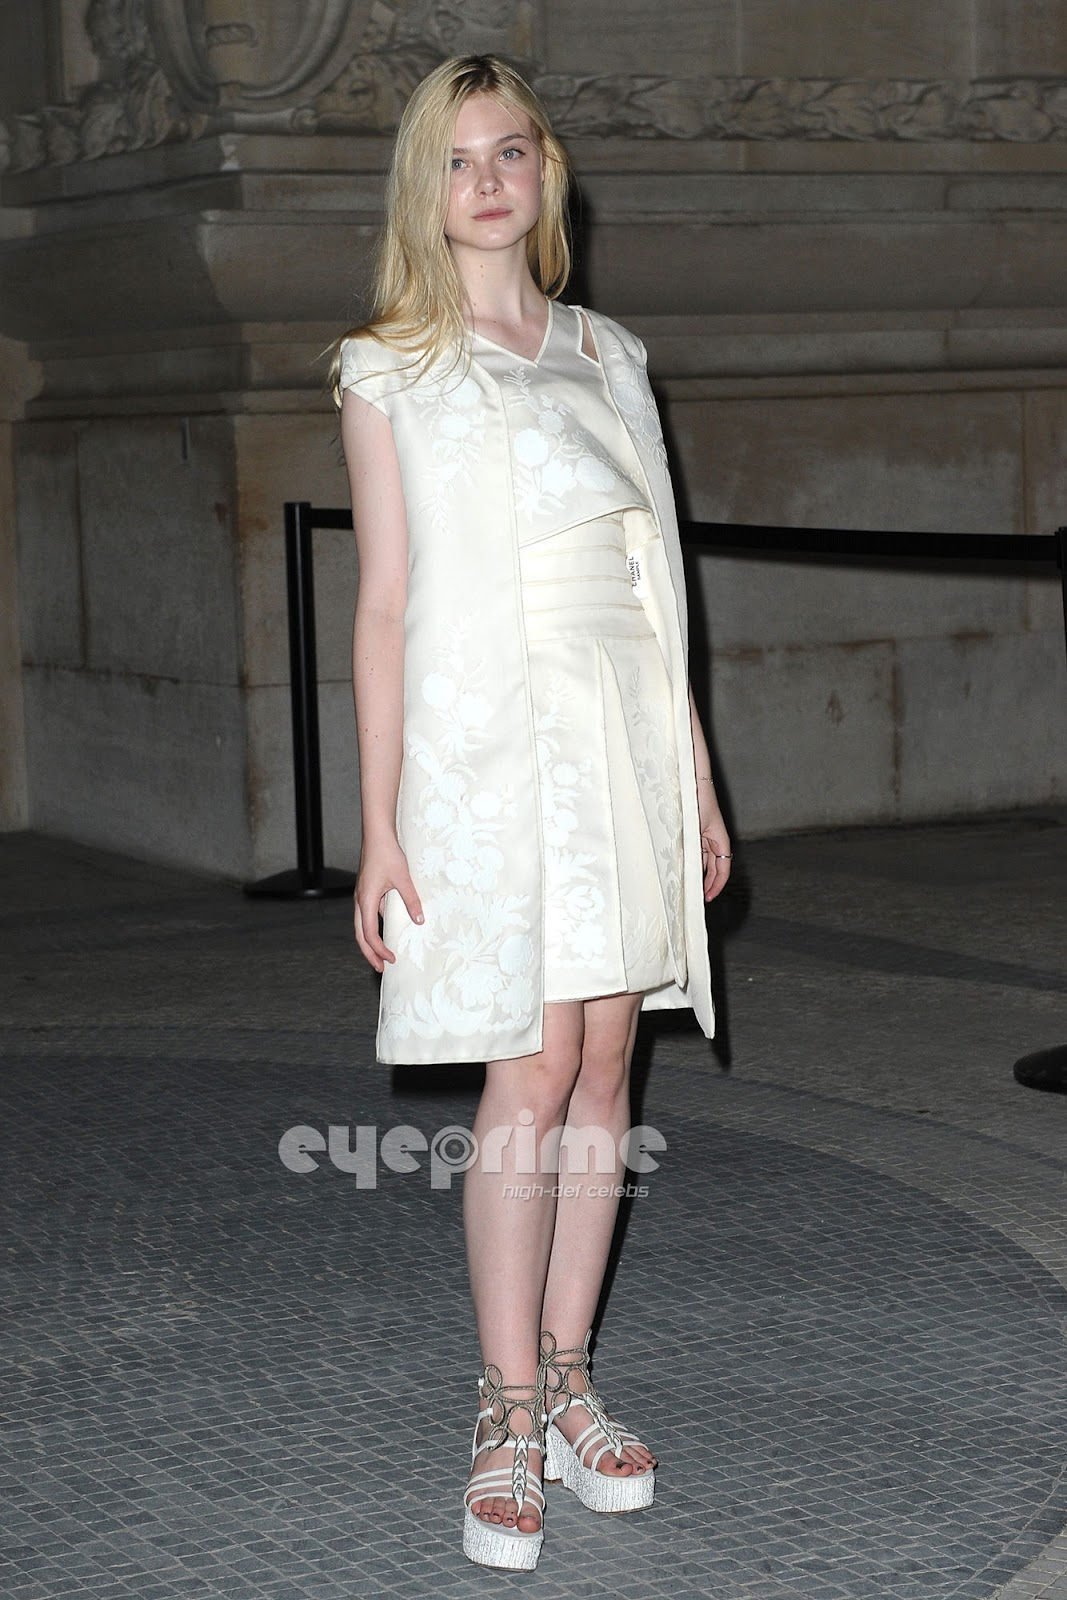 http://4.bp.blogspot.com/-9ggqhHkQS_U/UCwRwVi8MII/AAAAAAAAJcY/RI25pKCHlVA/s1600/Elle+Fanning+at+Chanel+Front+Row+-+Paris+Fashion+Week+Haute+Couture+FW+20112012+%28July+7,2011%29+%287%29.jpg